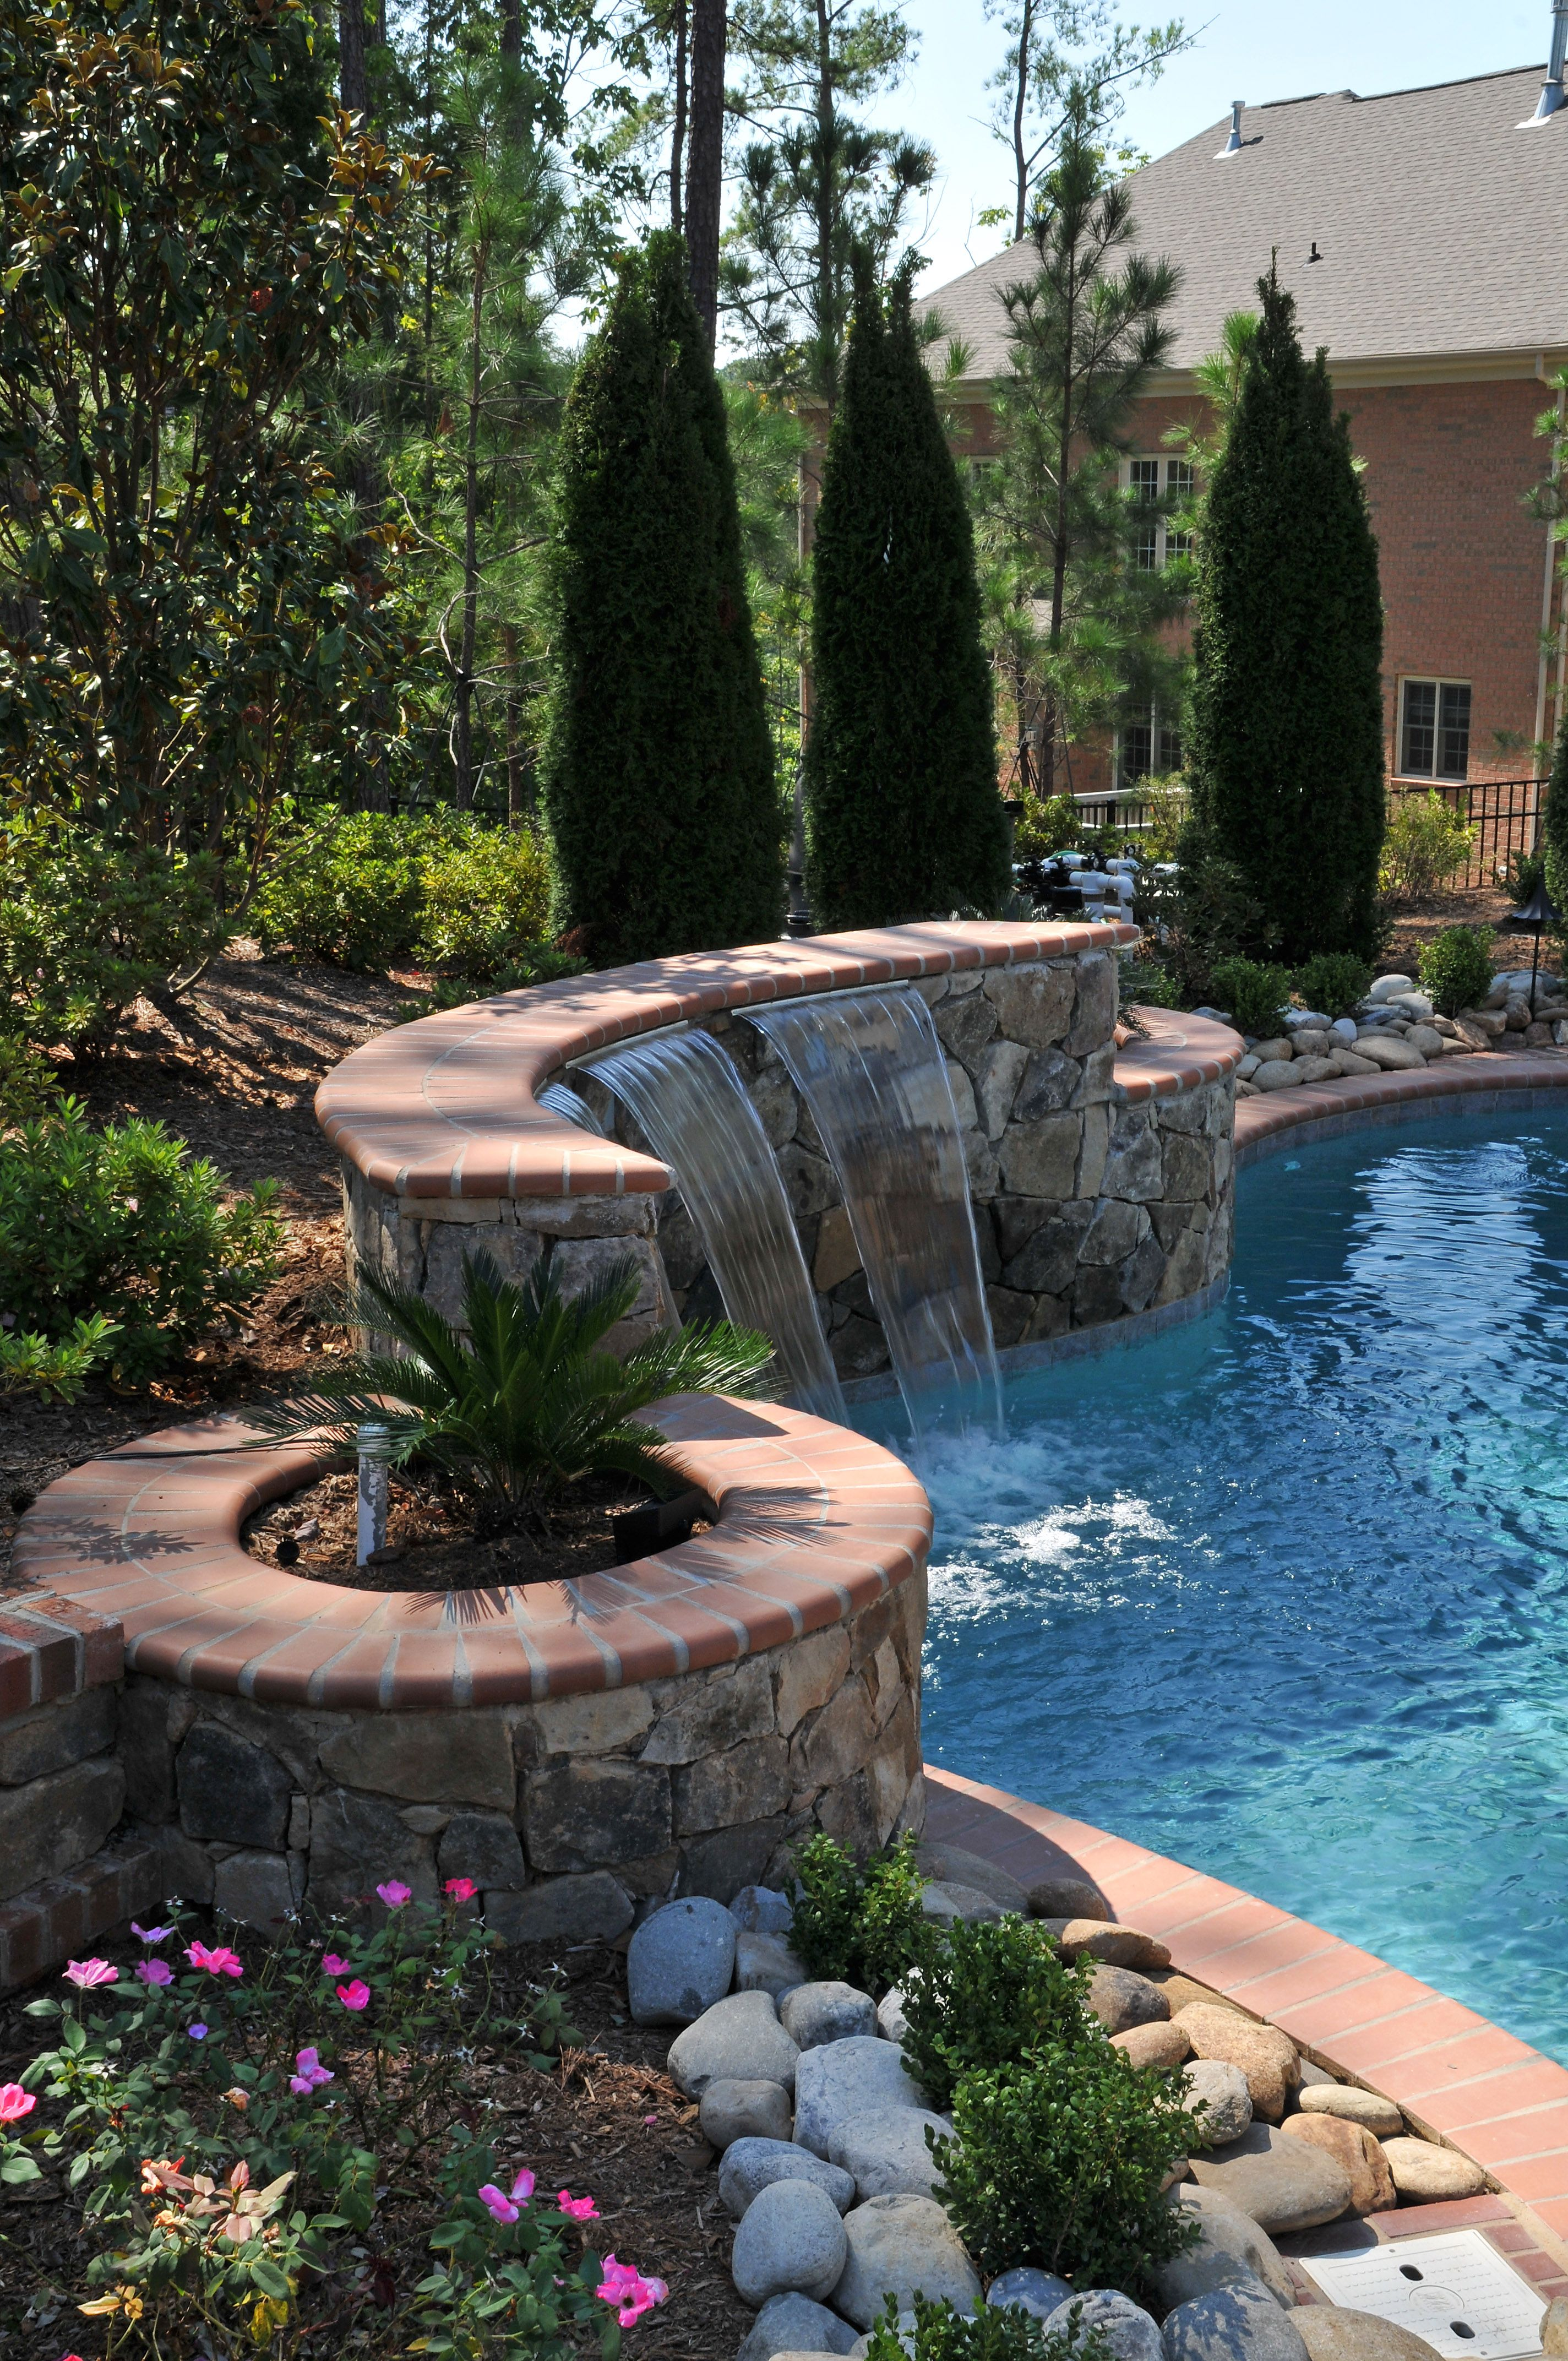 This Pool Is Built Into A Hill To Maximize Privacy From Adjoining Neighbors Swimming DesignsSwimming PoolsPool SlidesBackyard PoolsOutdoor